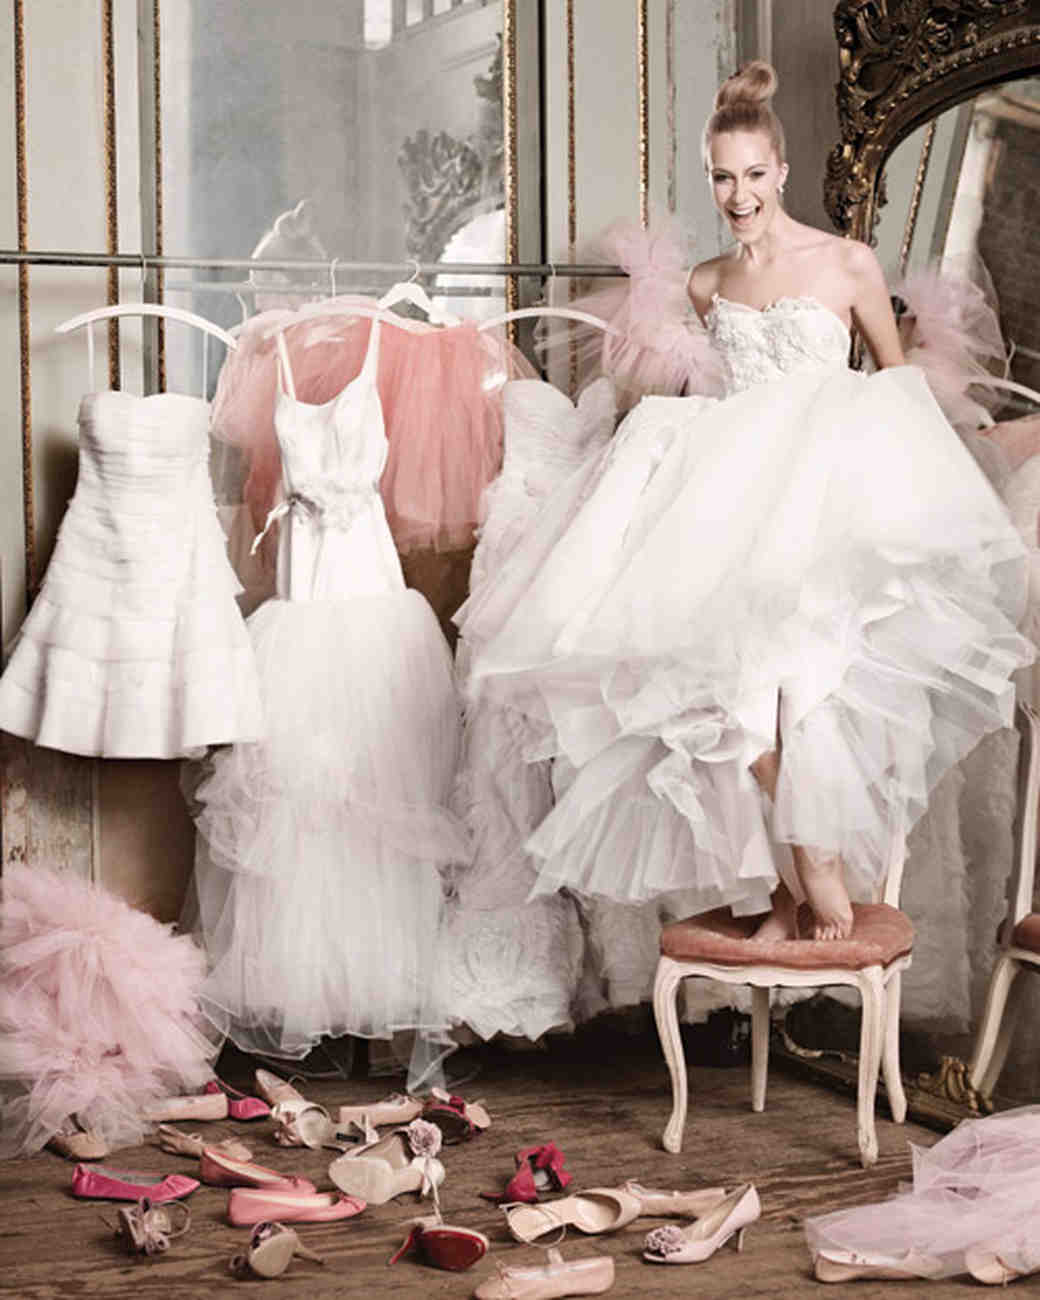 tips-to-avoid-frustration-while-shopping-for-your-bridal-dress